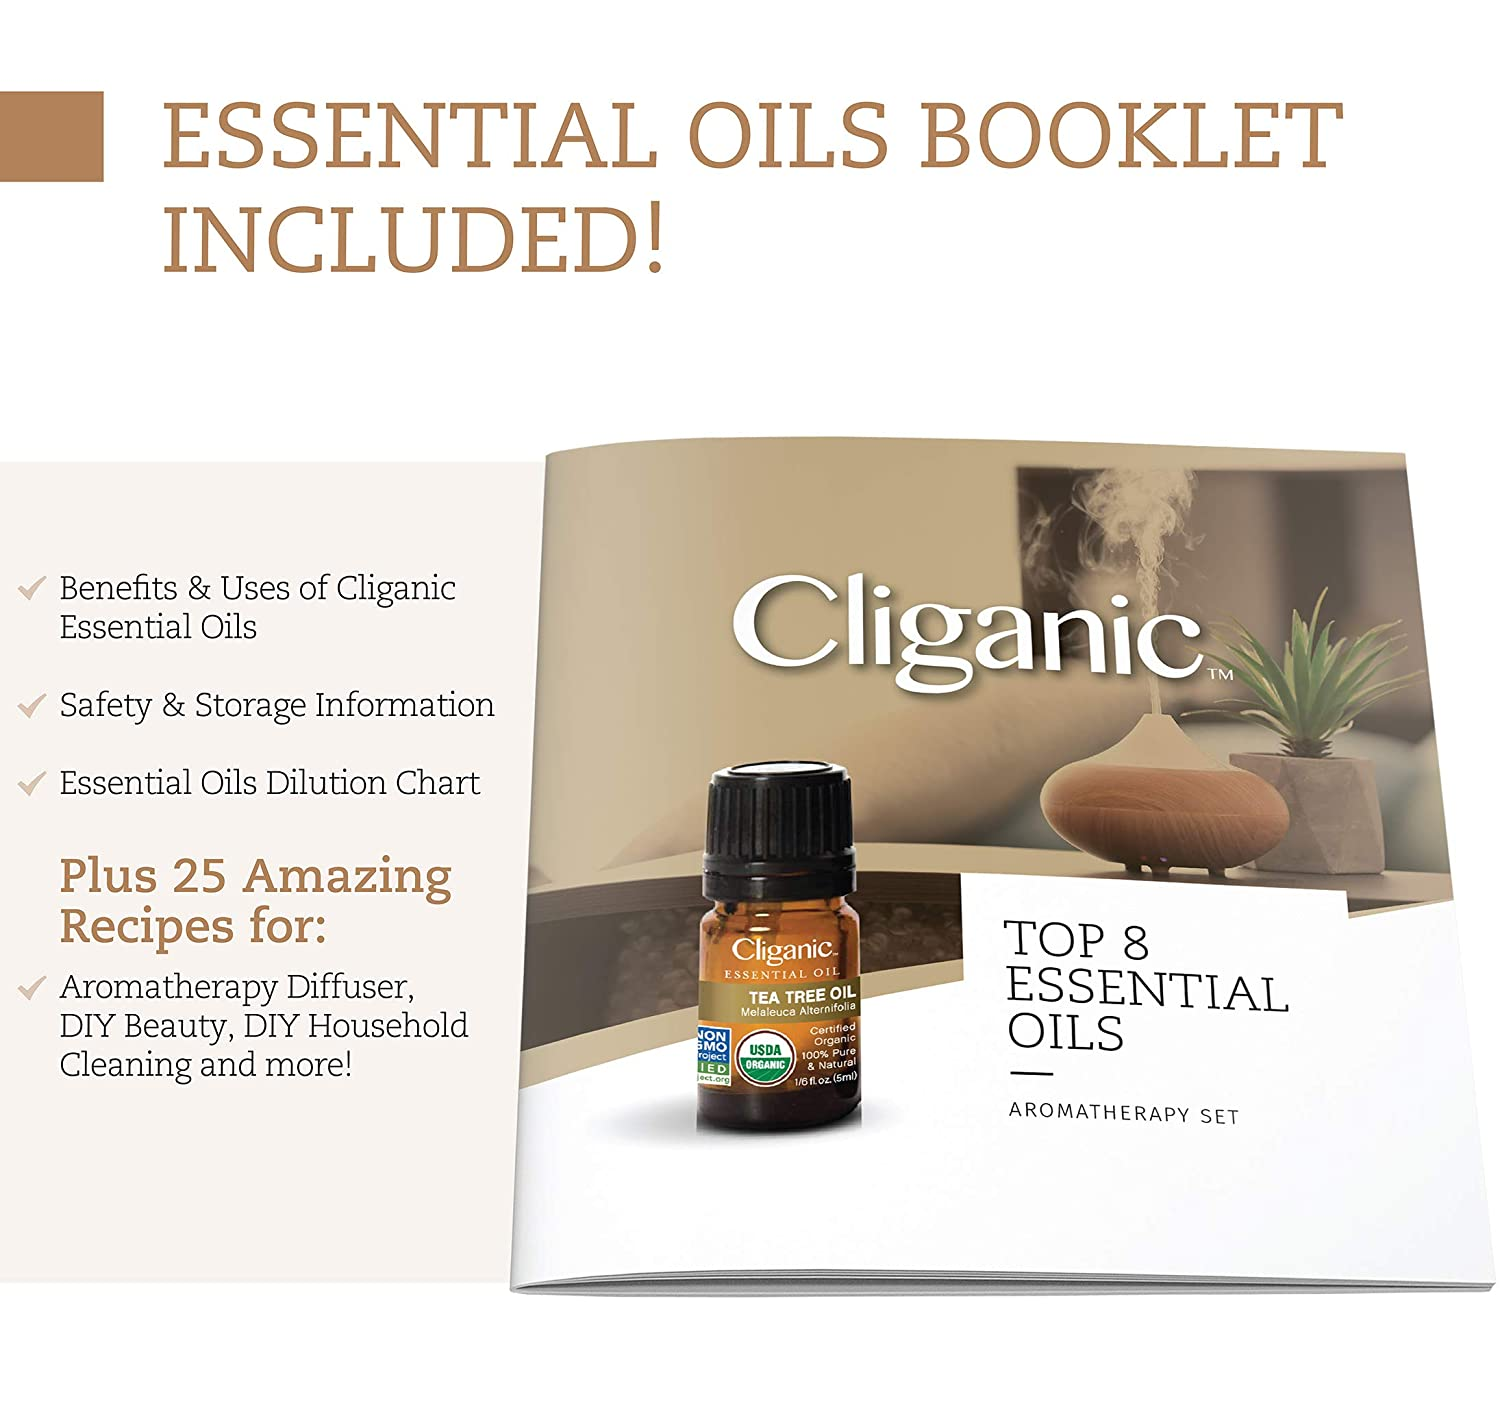 Cliganic USDA Organic Aromatherapy Essential Oils Set (Top 8), 100% Pure Natural - Peppermint, Lavender, Eucalyptus, Tea Tree, Lemongrass, Rosemary, Frankincense & Orange | Cliganic 90 Days Warranty: Beauty